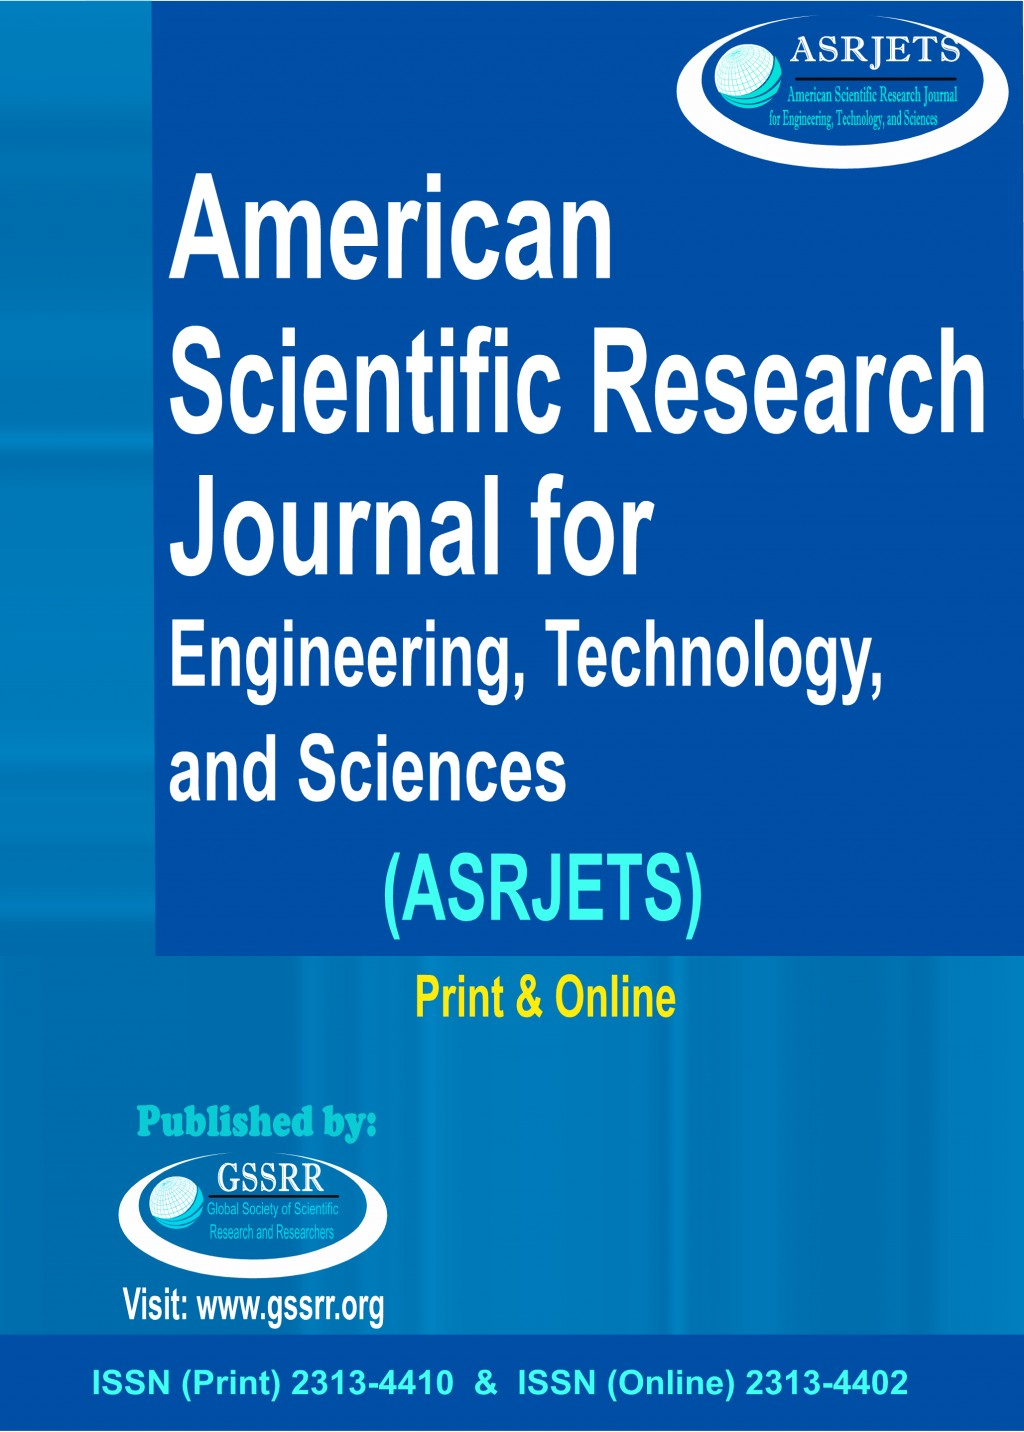 011 Online Researchs Asrjets Unusual Research Papers Voting Free Buy Large